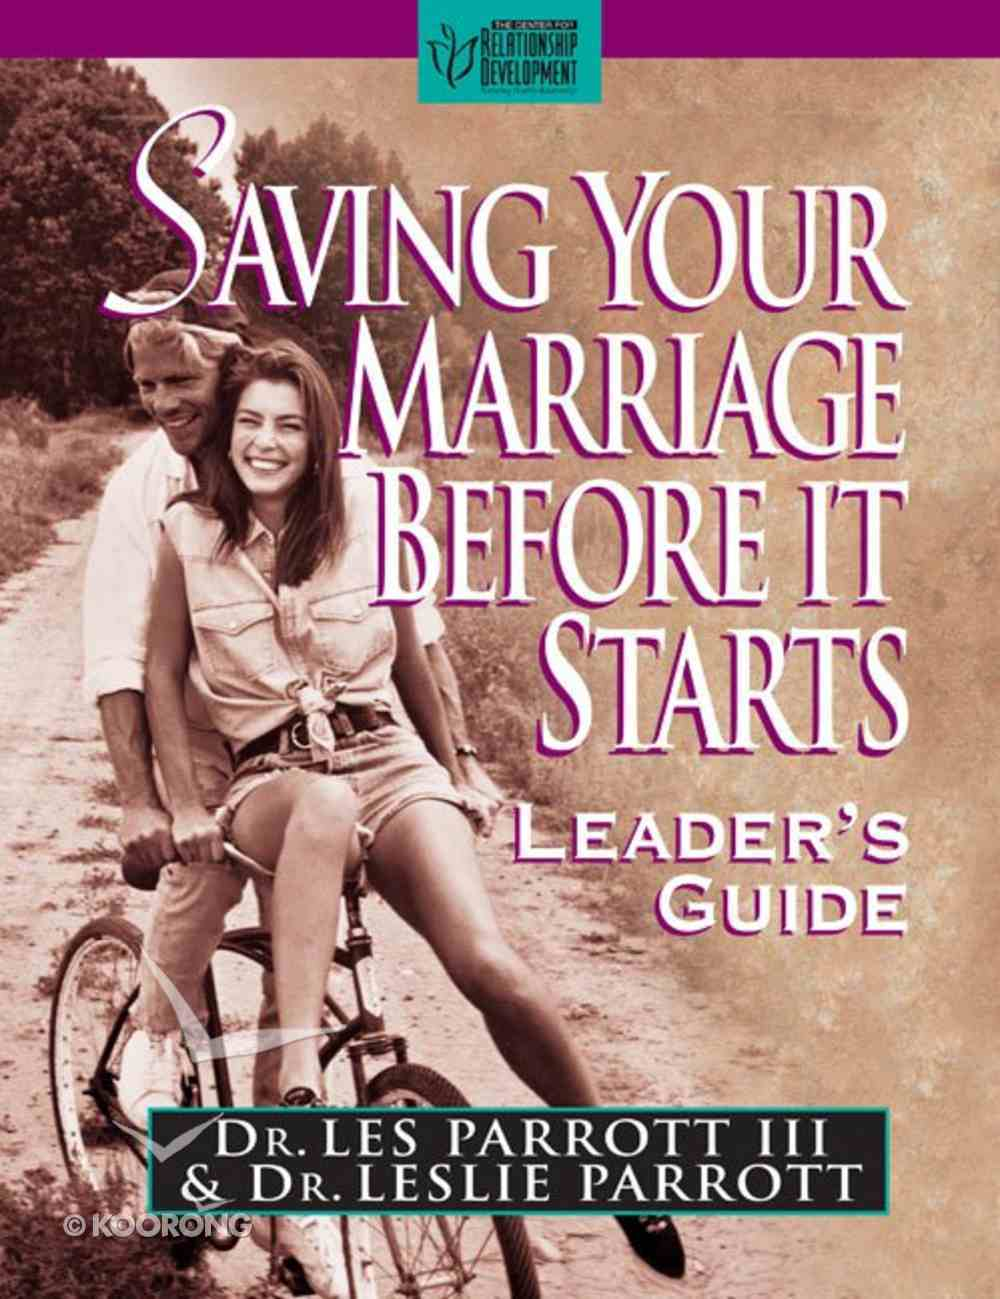 Saving Your Marriage Before It Starts (Leader's Guide) Paperback